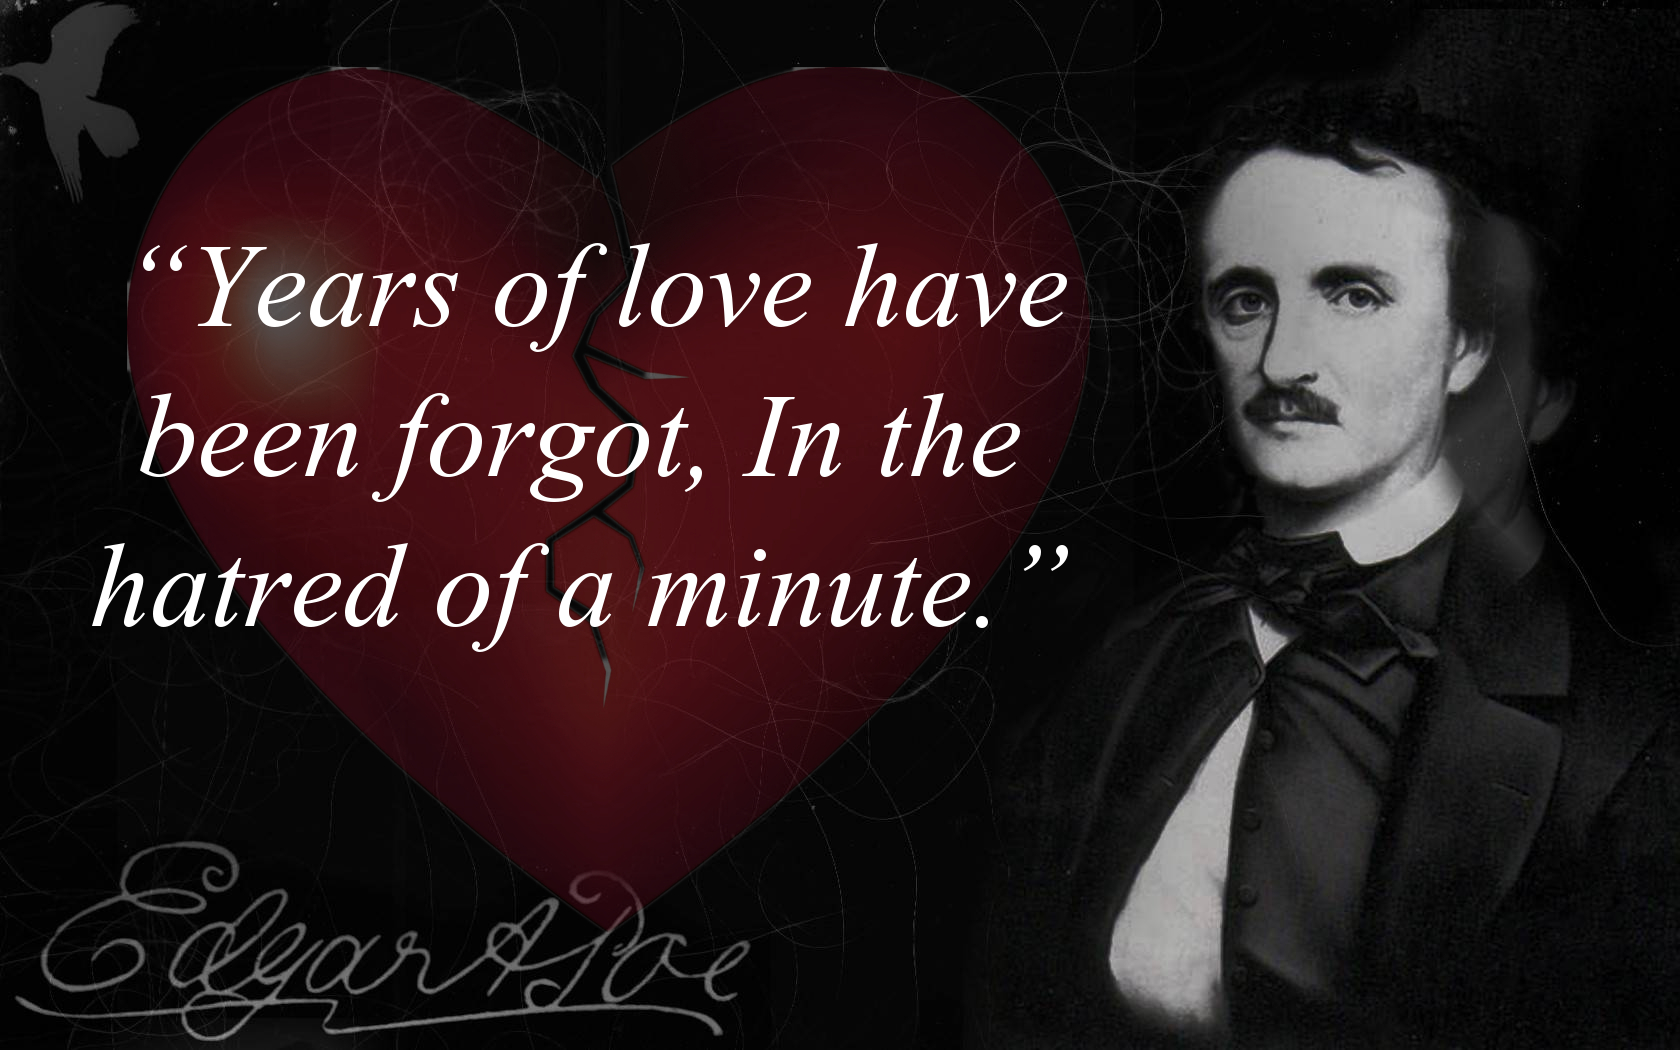 """Years of love have been forgot, In the hatred of a minute."" – Edgar Allan Poe [OC] [1680×1050]"